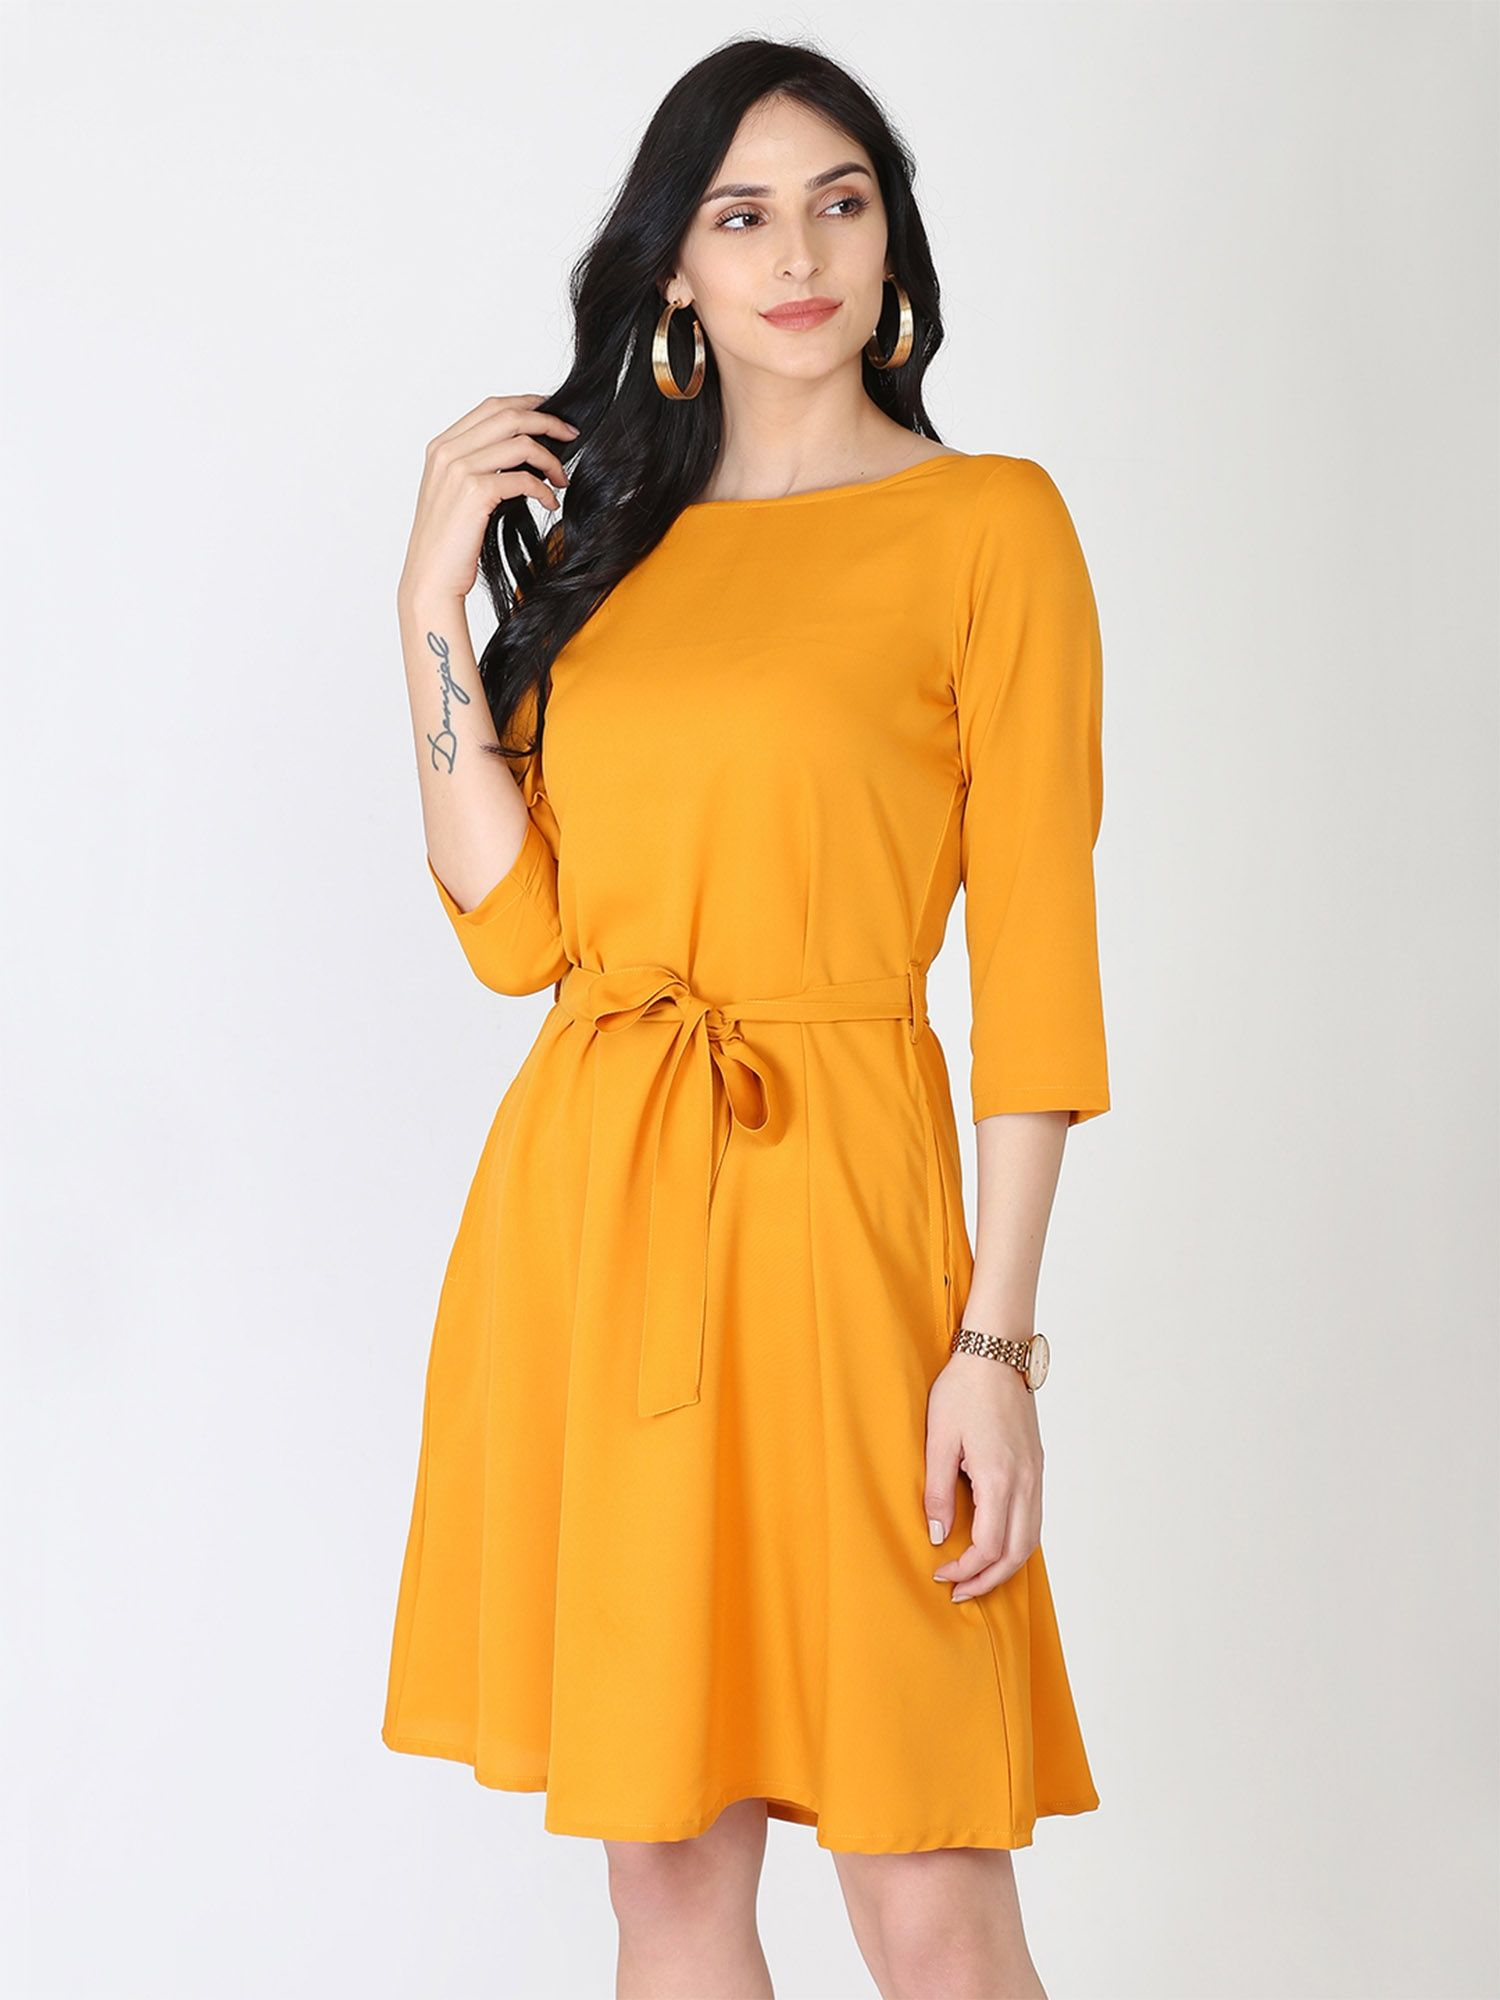 Abhishti Belt & Bow Polycrepe Mustard Shift Dress